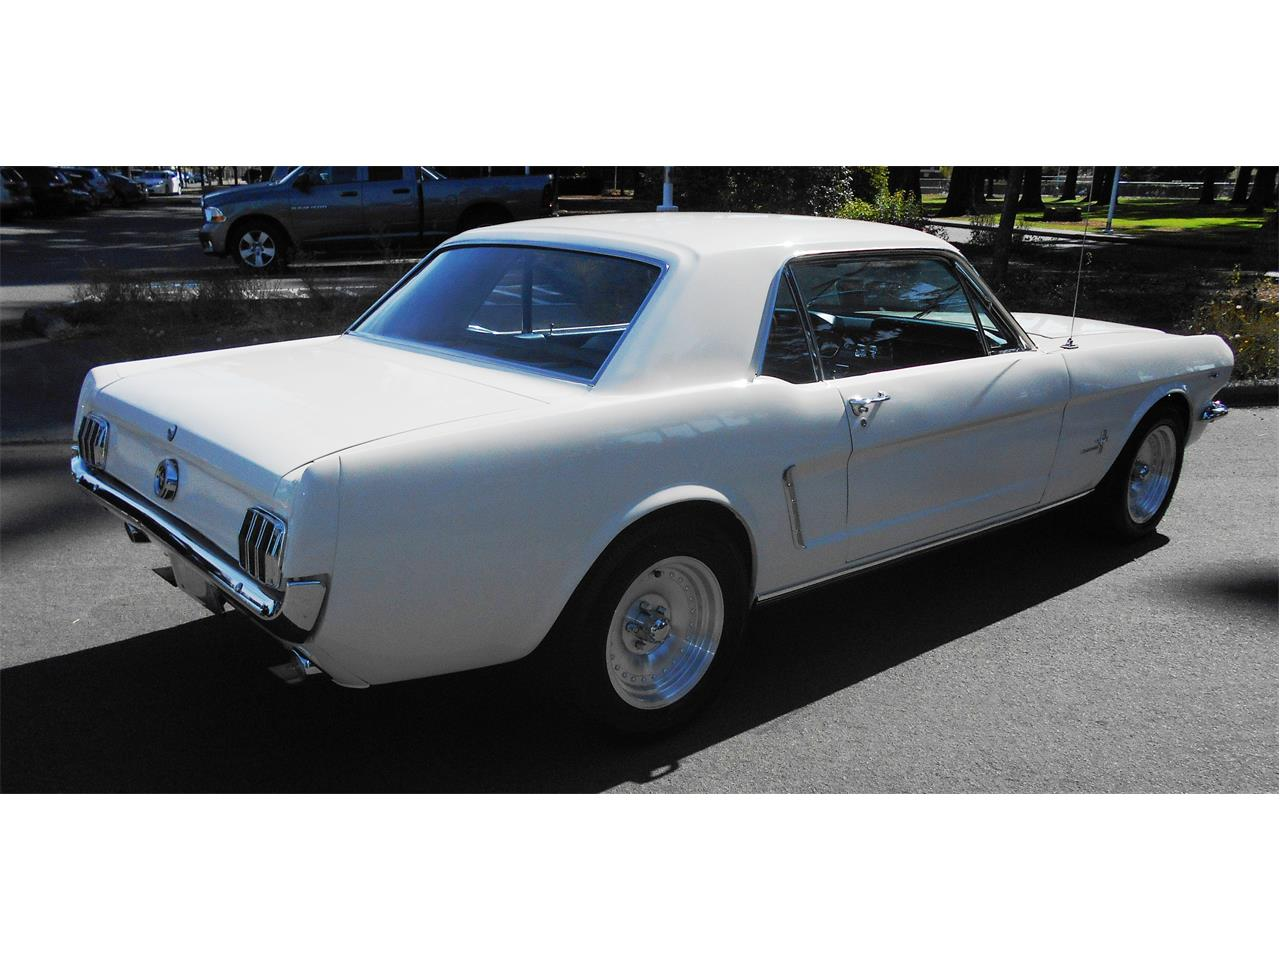 Large Picture of '65 Mustang located in Tacoma Washington - $18,950.00 Offered by Austin's Pro Max - JB63